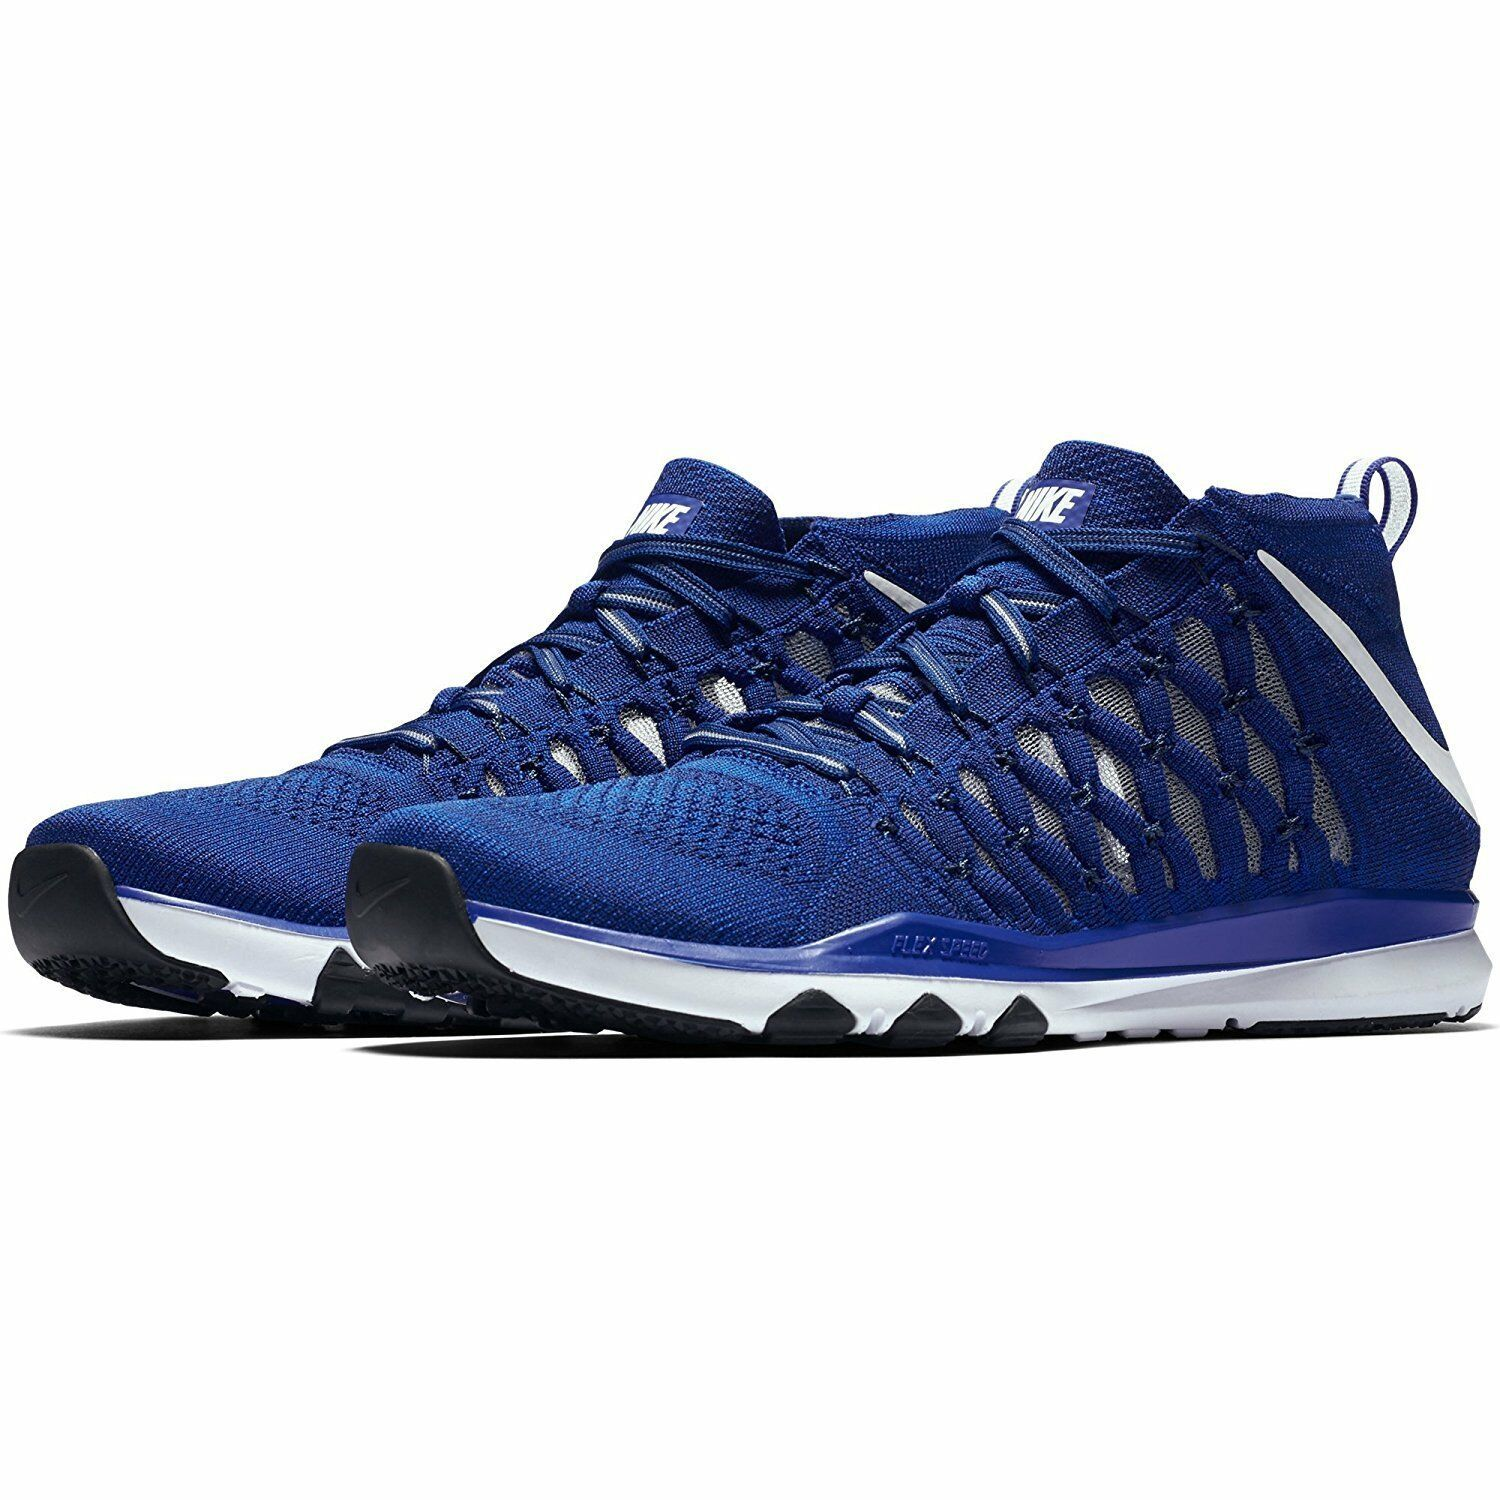 Men's Nike Train Ultrafast Flyknit Training Shoes, 843694 401 Multip Sizes Blue